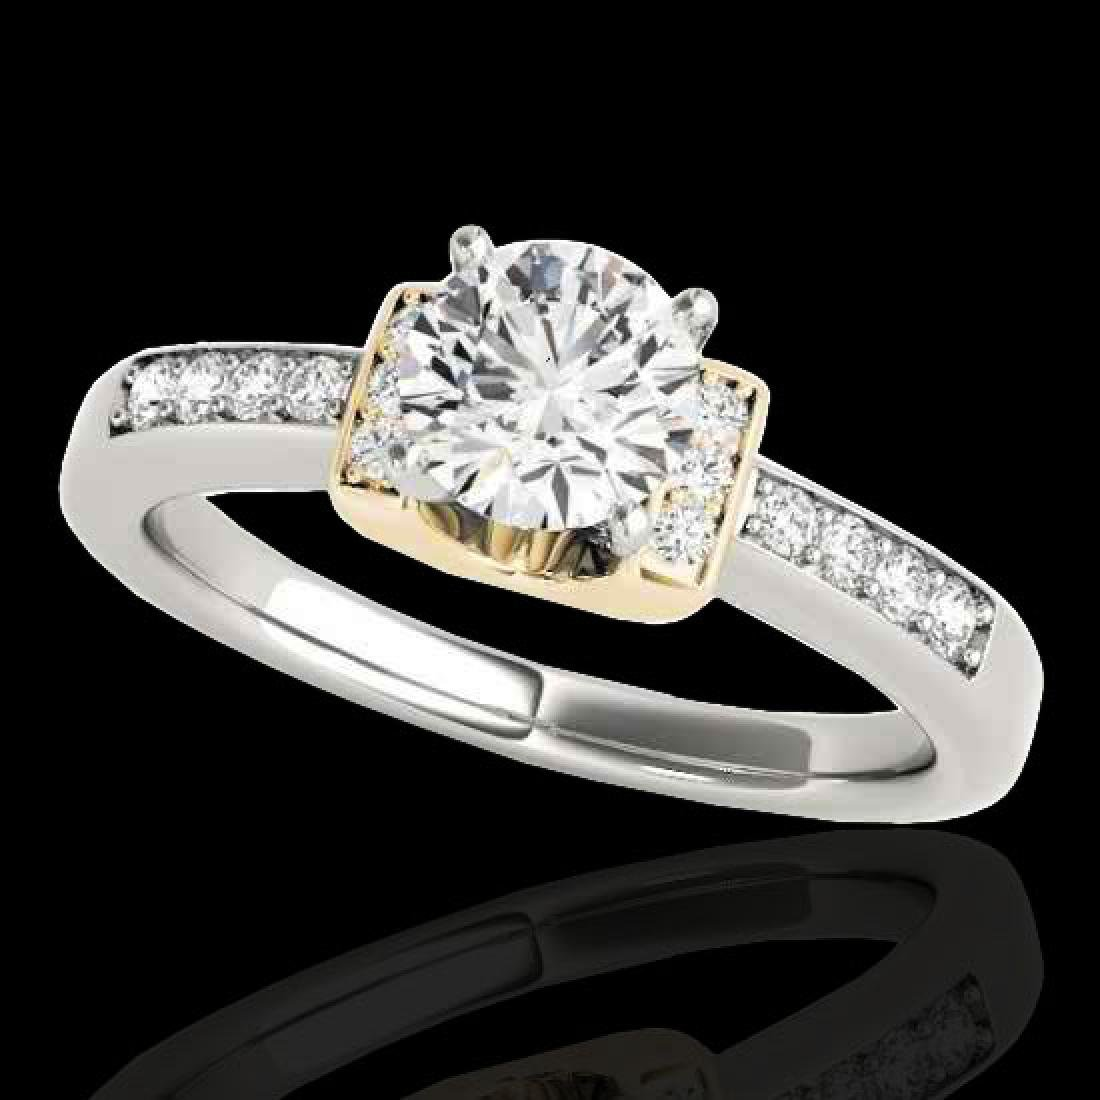 1.11 CTW H-SI/I Certified Diamond Solitaire Ring 10K